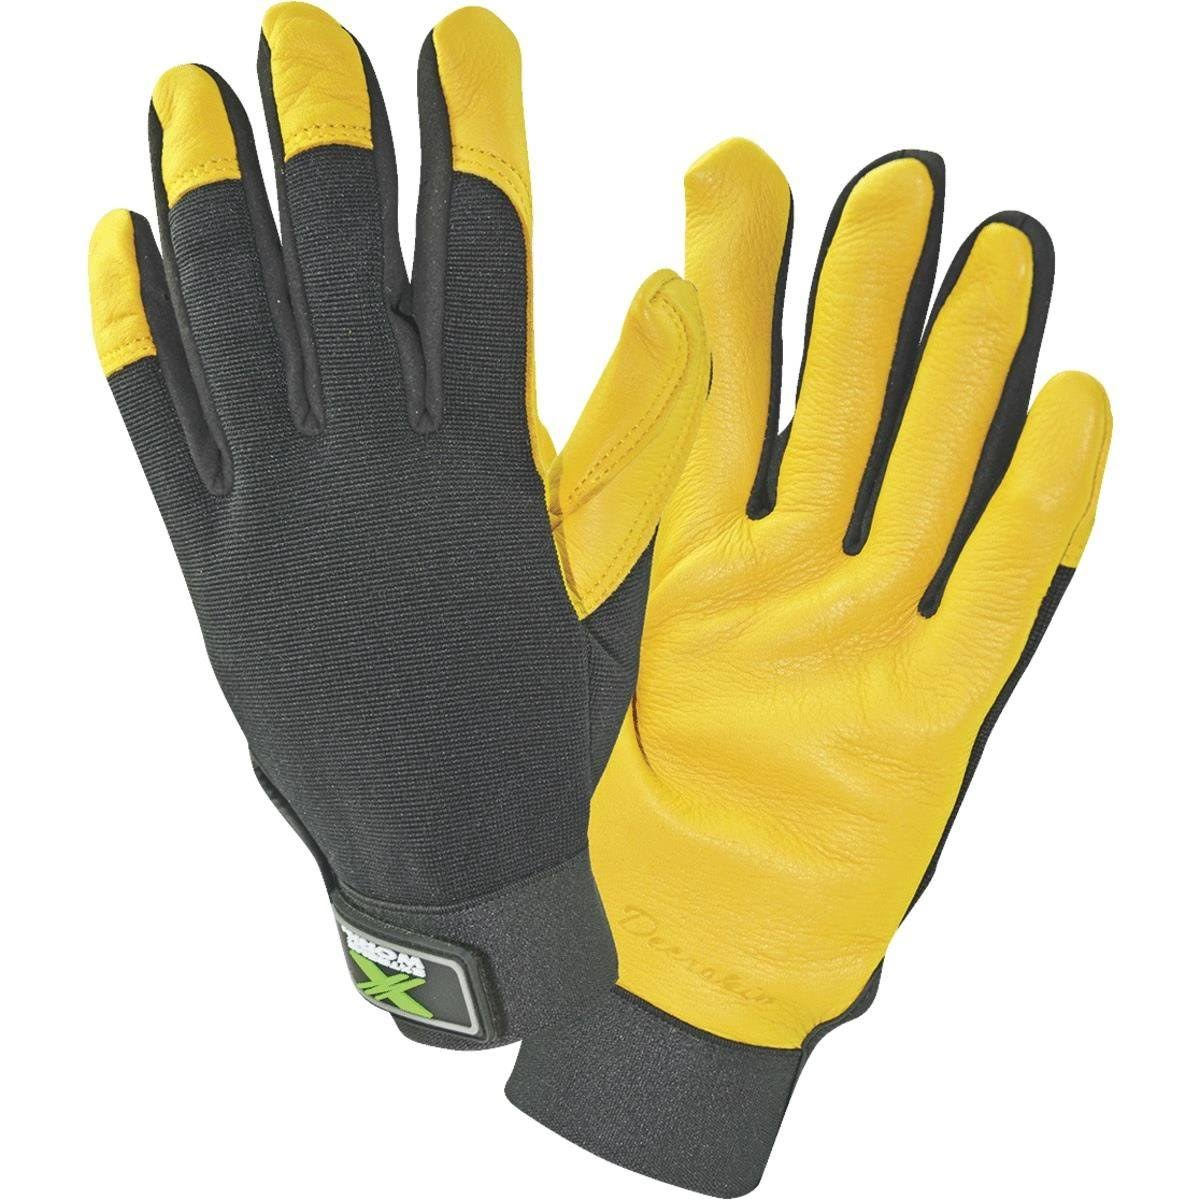 West Chester Protective Gear Extreme Work Leather Work Glove 86405-XL